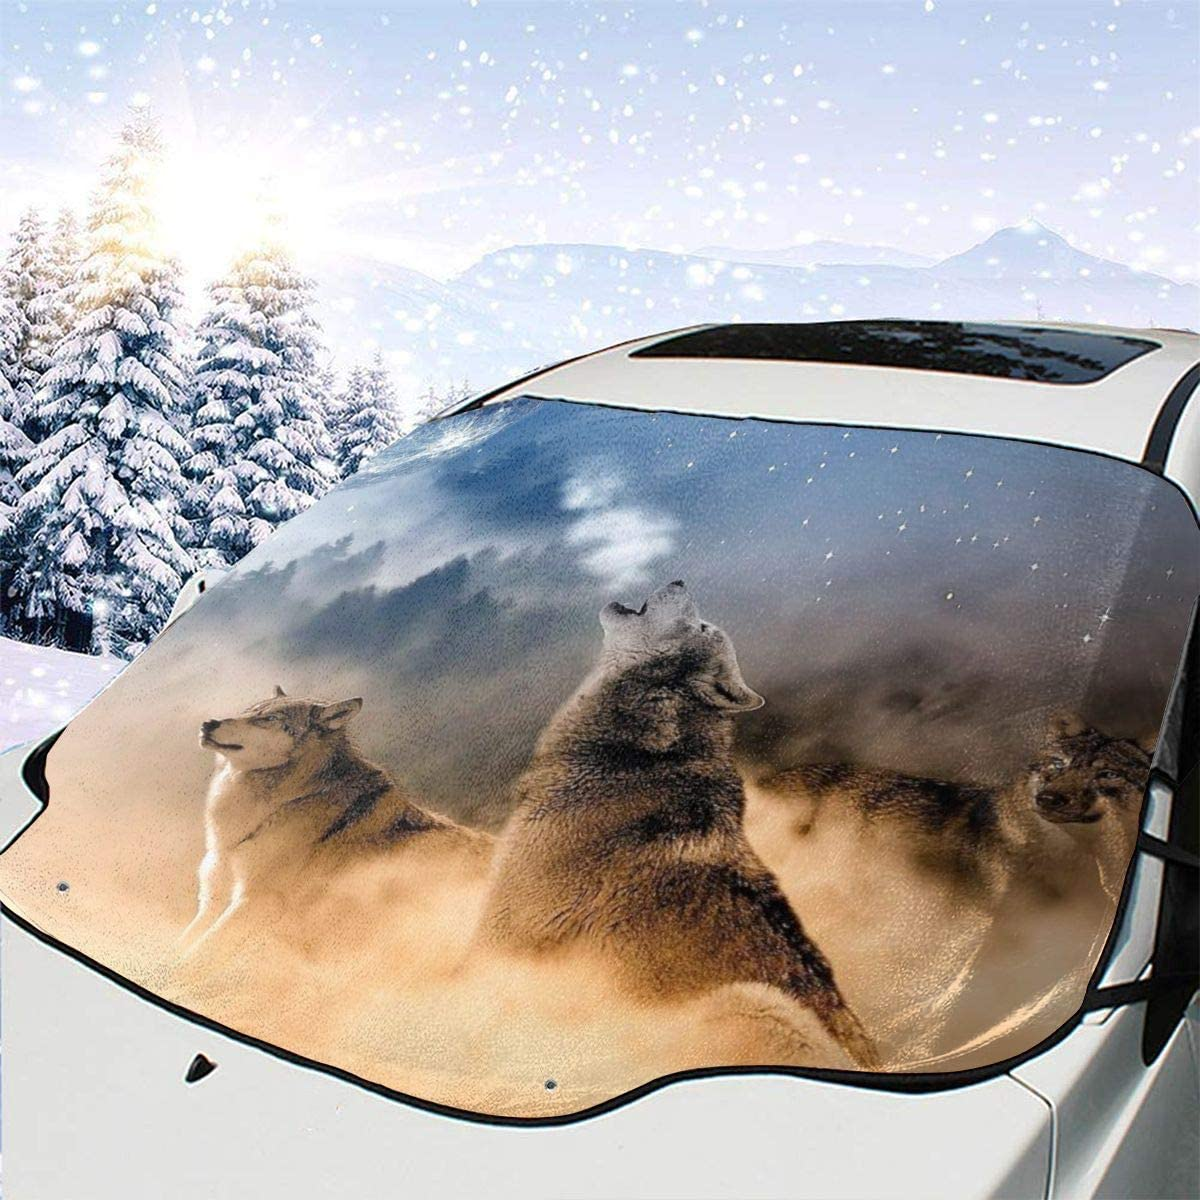 THONFIRE Car Front Window Windshields Winter Sunshade Wolf Song Night Cover Snow Proof Blocks UV Rays Keeps Your Vehicle Cool Visor Protector Auto Spring Heatshield